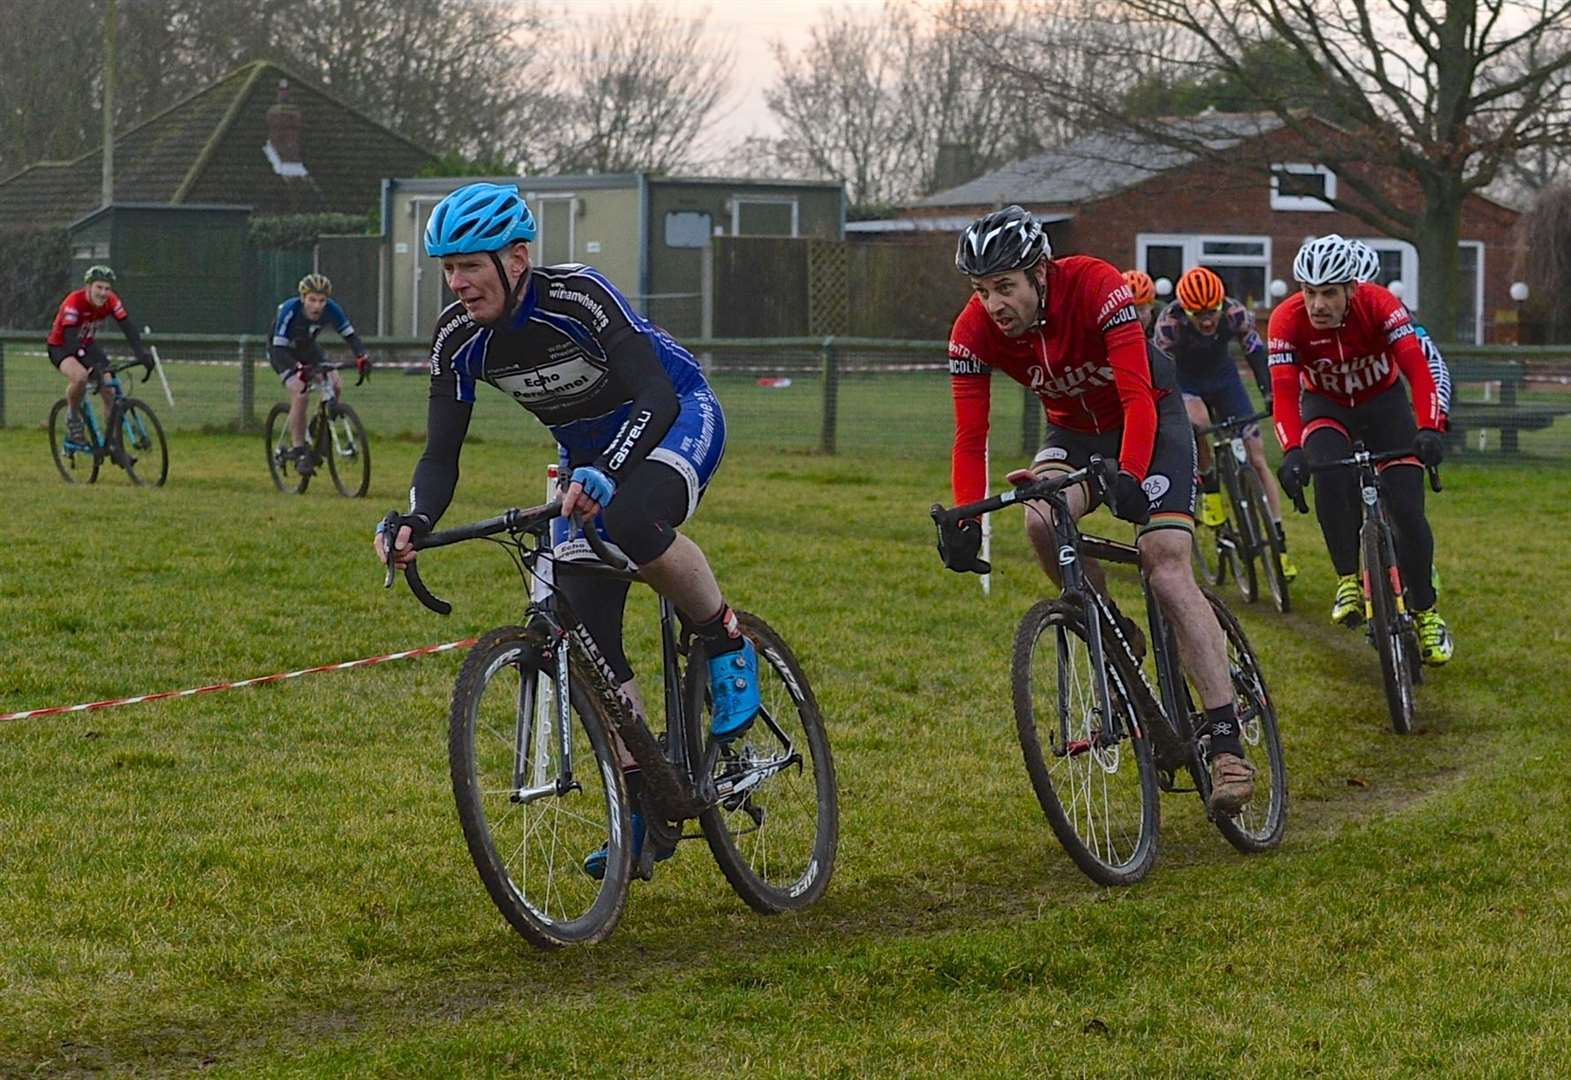 Change of course for latest Lincs League Cyclo-Cross meet